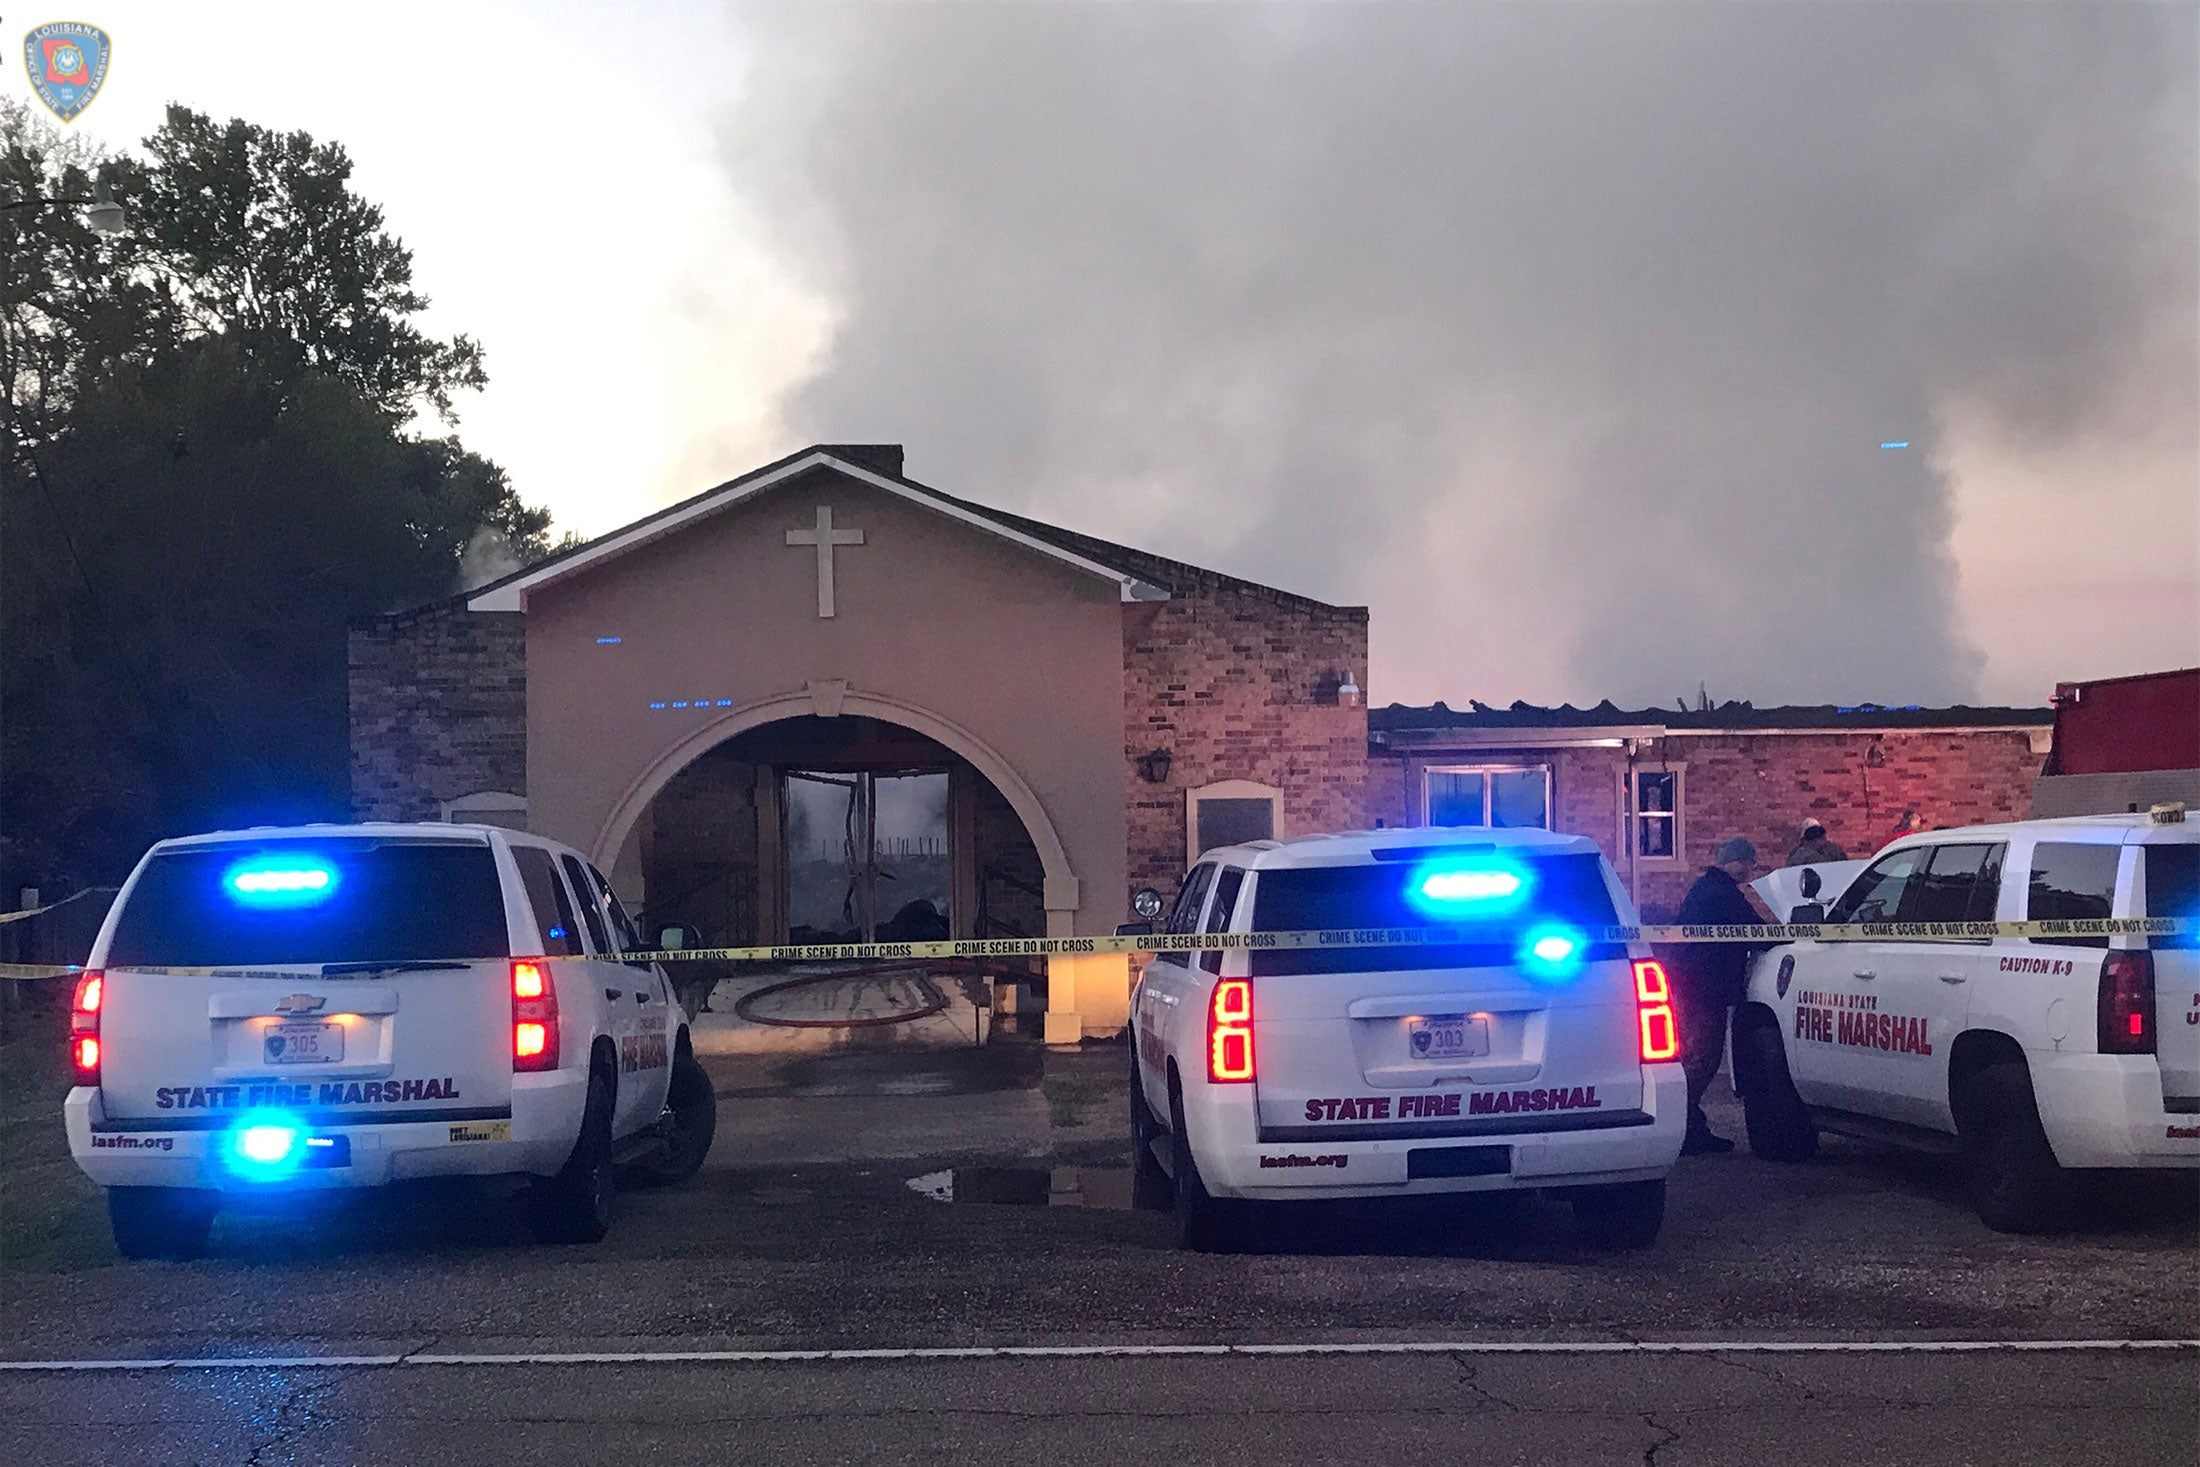 Louisiana State Fire Marshall vehicles are seen outside the Greater Union Baptist Church during a fire, in Opelousas, Louisiana, U.S. April 2, 2019.